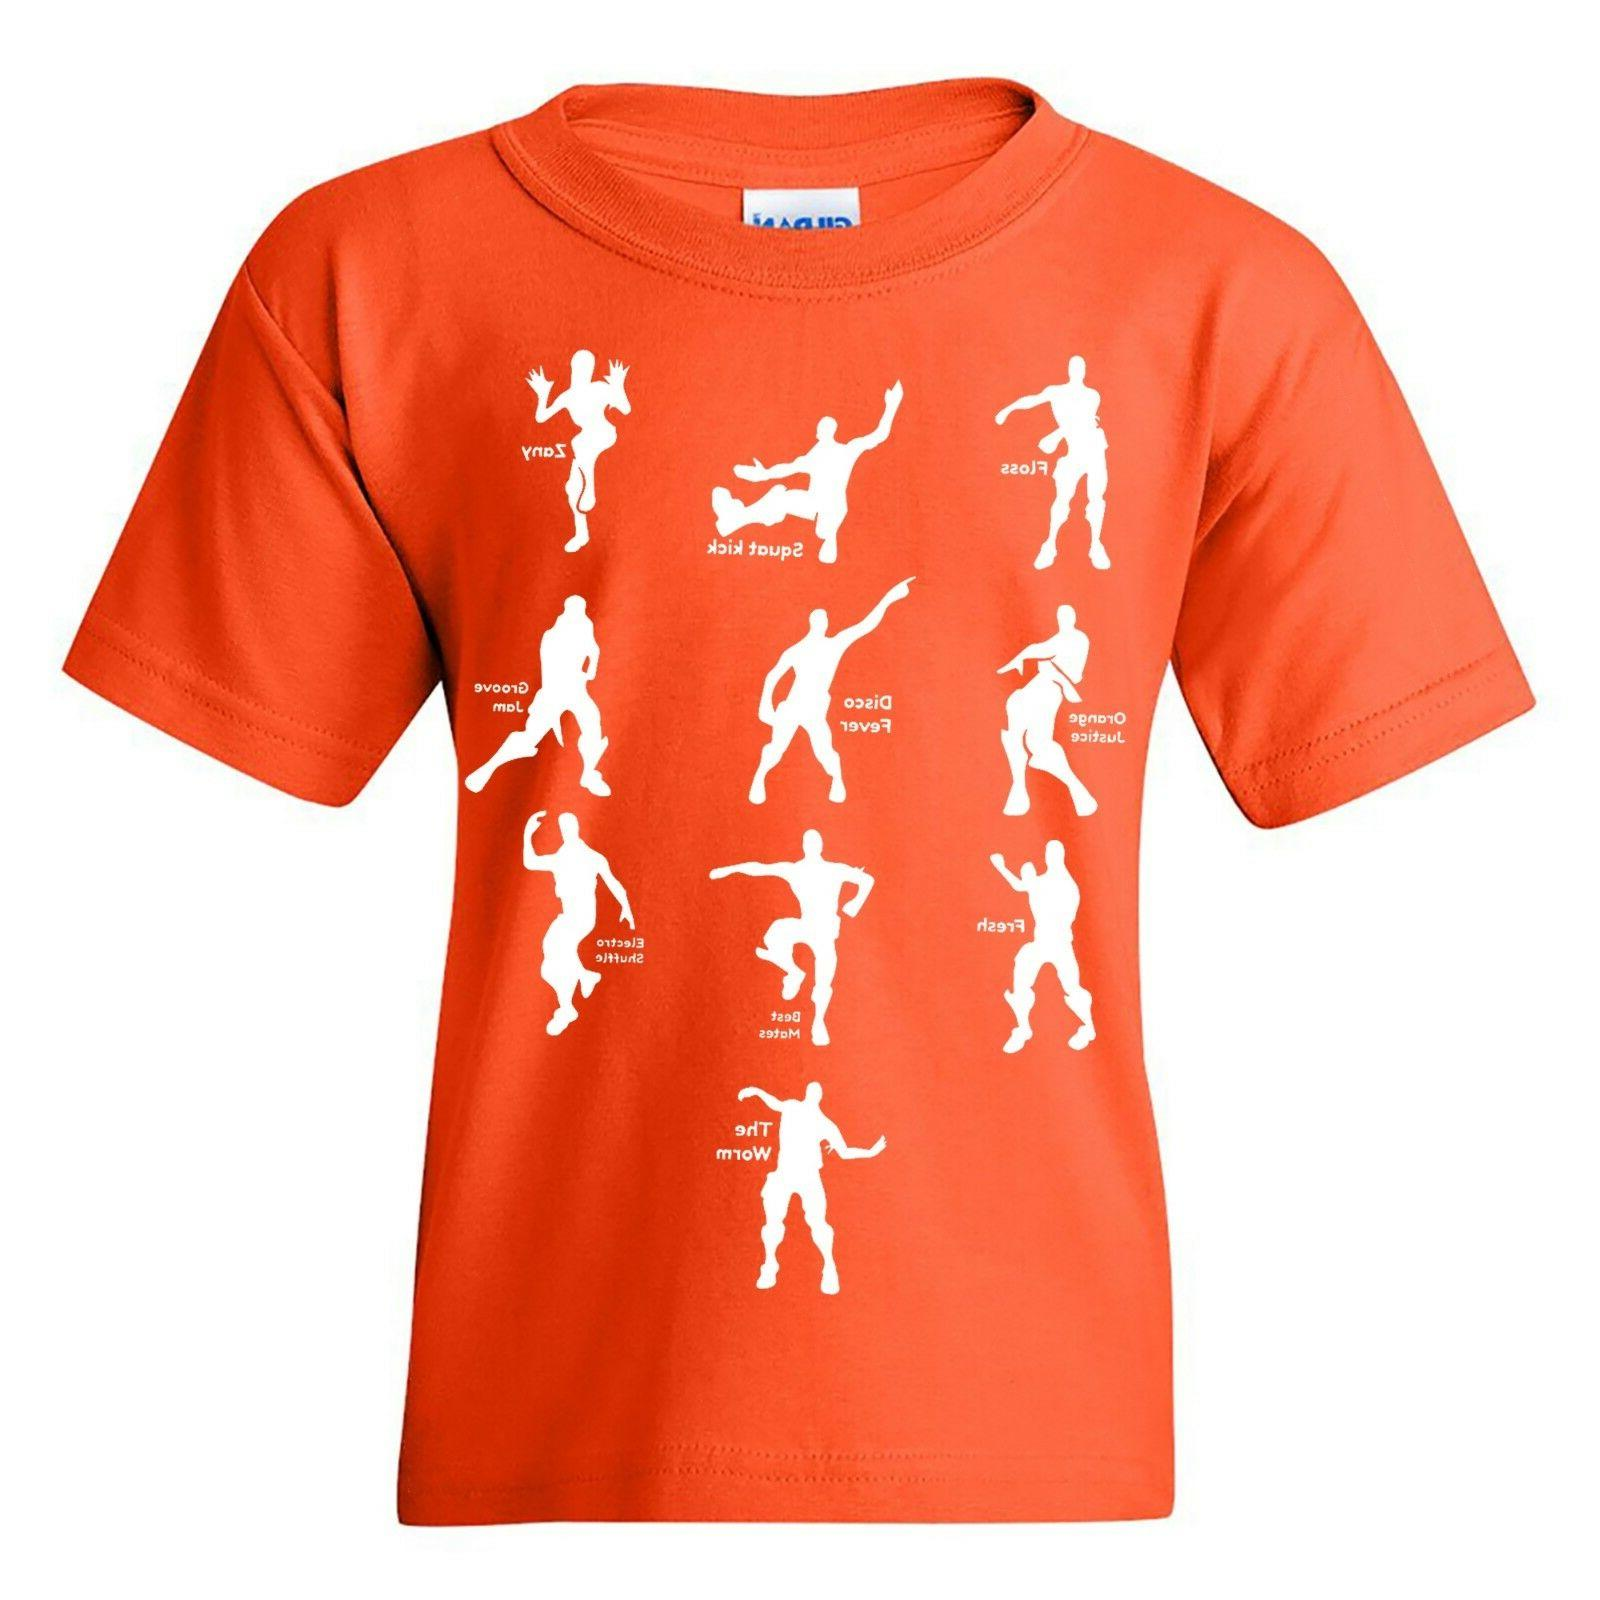 Emote Dances - Gaming Parody Video Game Youth T Shirt